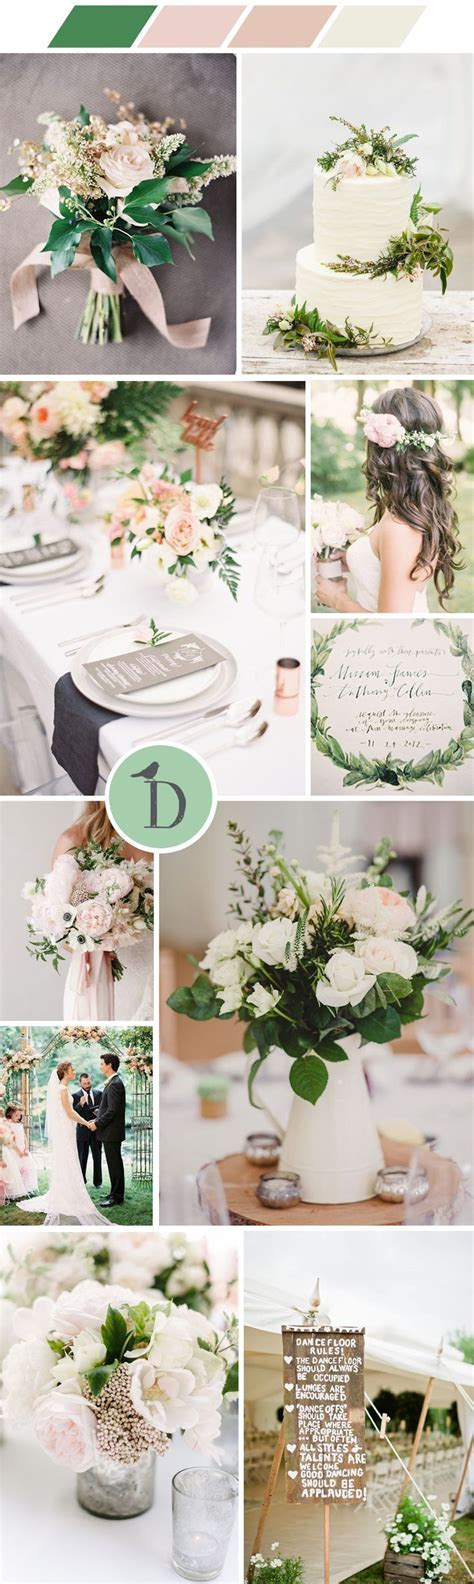 Best 25  Pink green wedding ideas on Pinterest   Blush